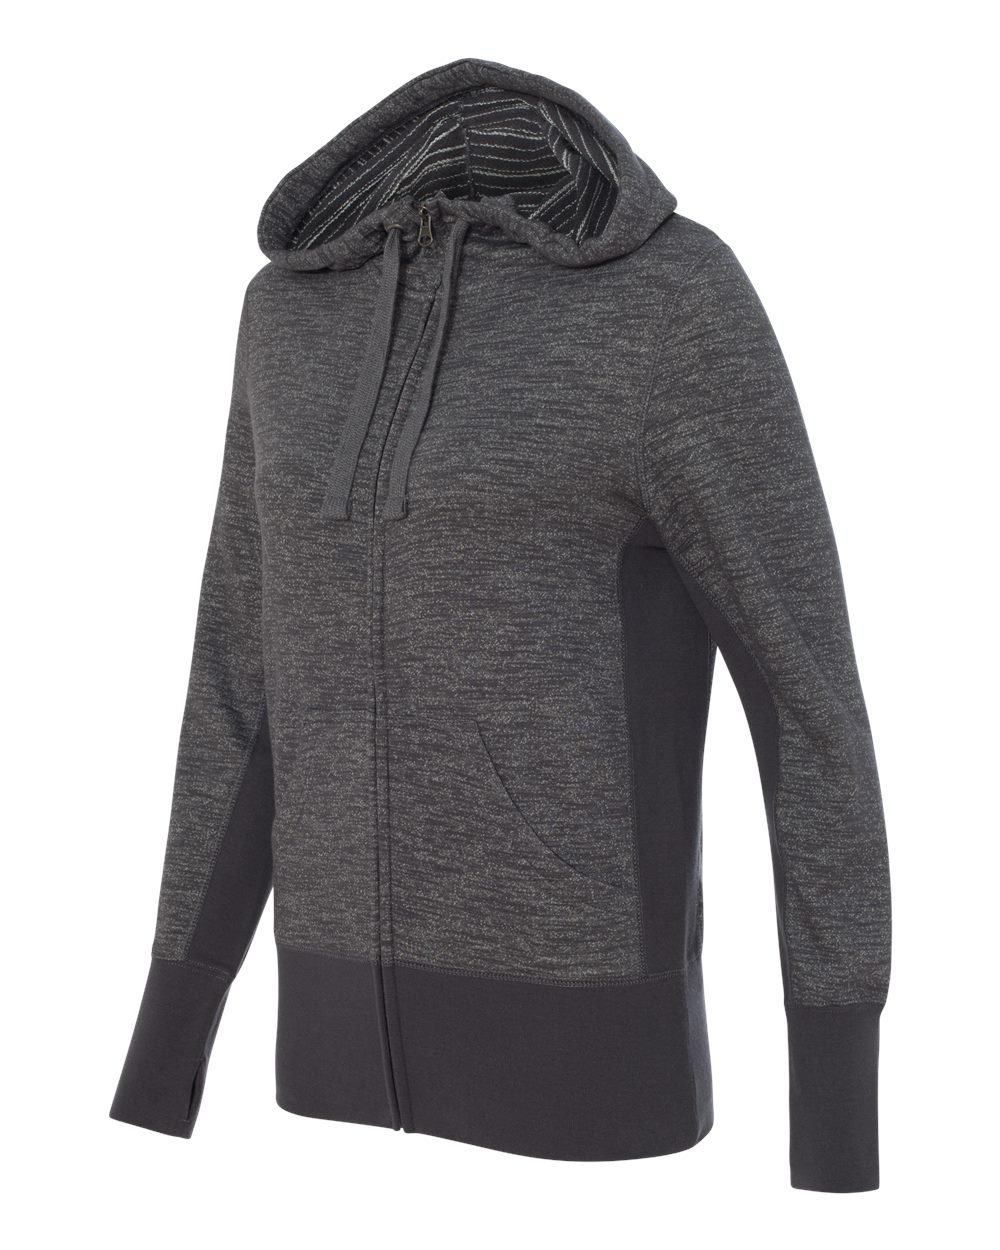 Independent Trading Co. PRM655BZ - Women's Baja Stripe French Terry Hooded Full-Zip Sweatshirt